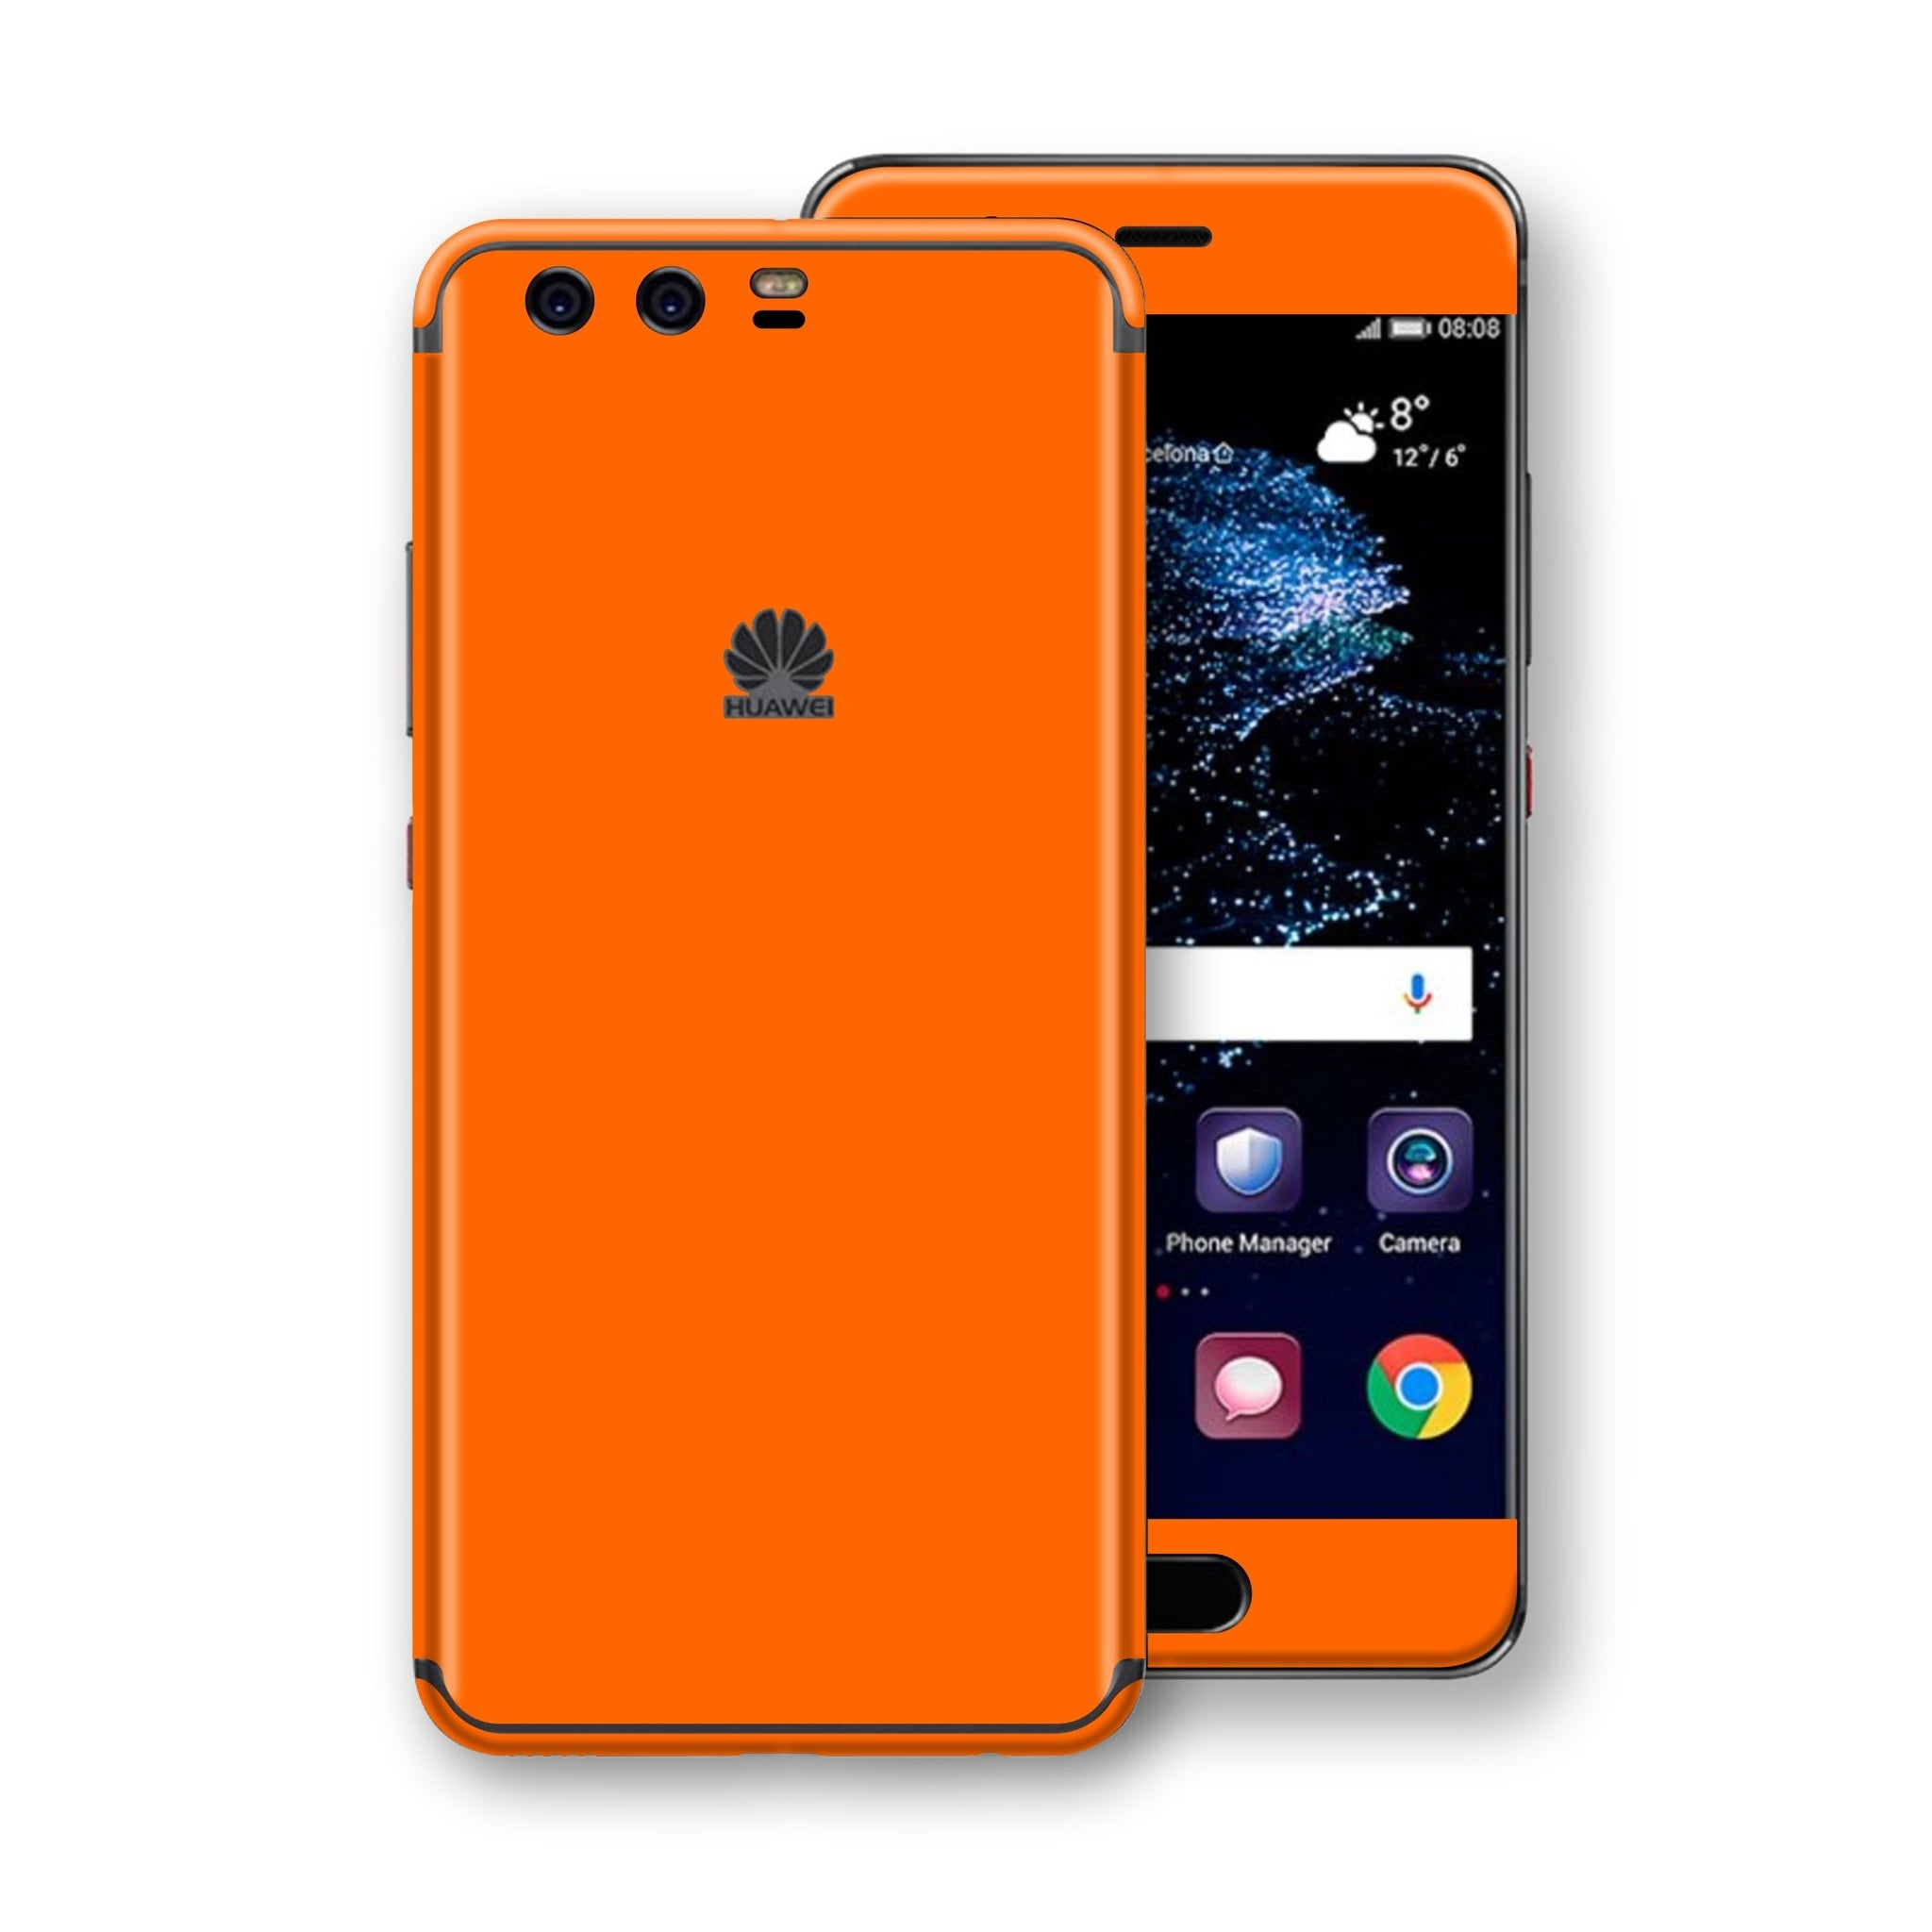 Huawei P10+ PLUS  Orange Glossy Gloss Finish Skin, Decal, Wrap, Protector, Cover by EasySkinz | EasySkinz.com